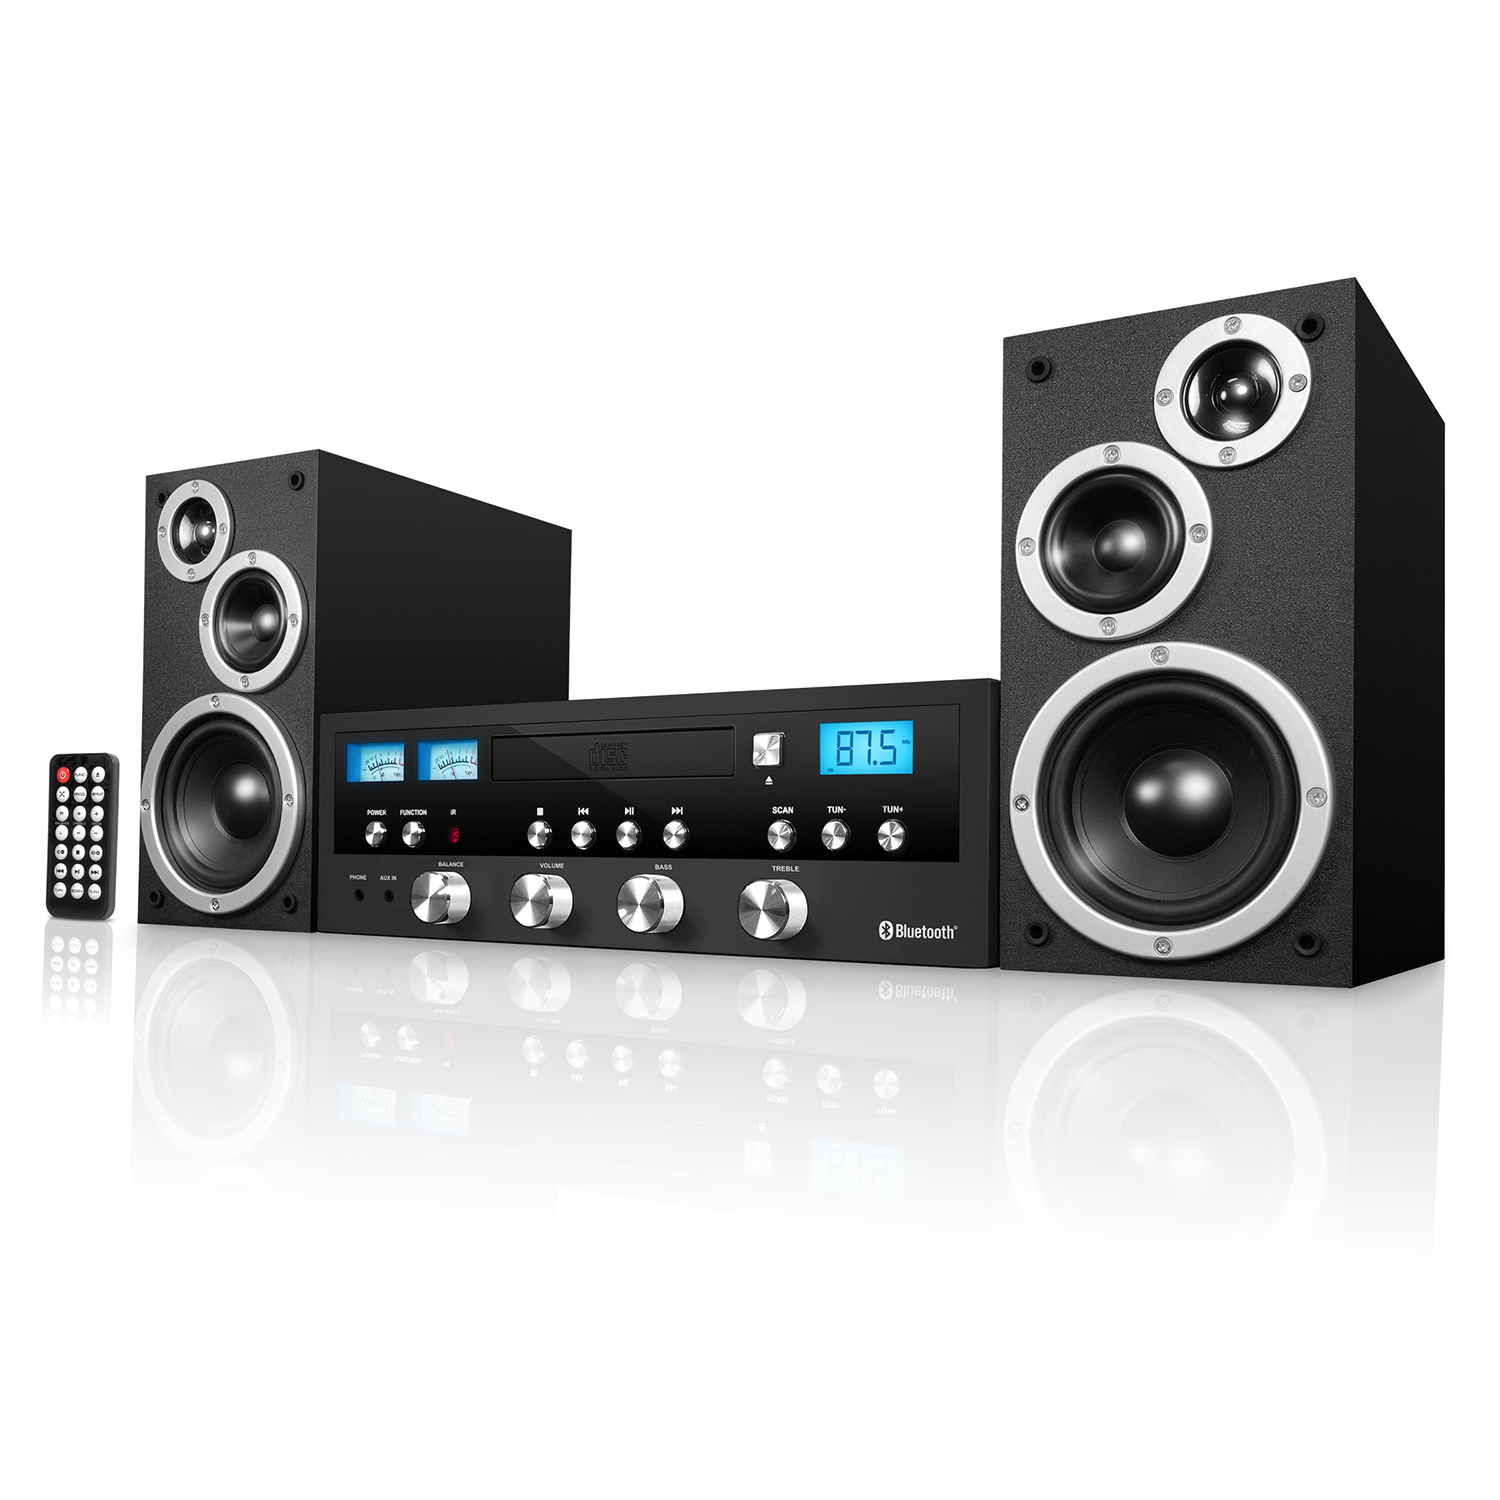 blackweb 50 watt classic cd stereo with bluetooth. Black Bedroom Furniture Sets. Home Design Ideas